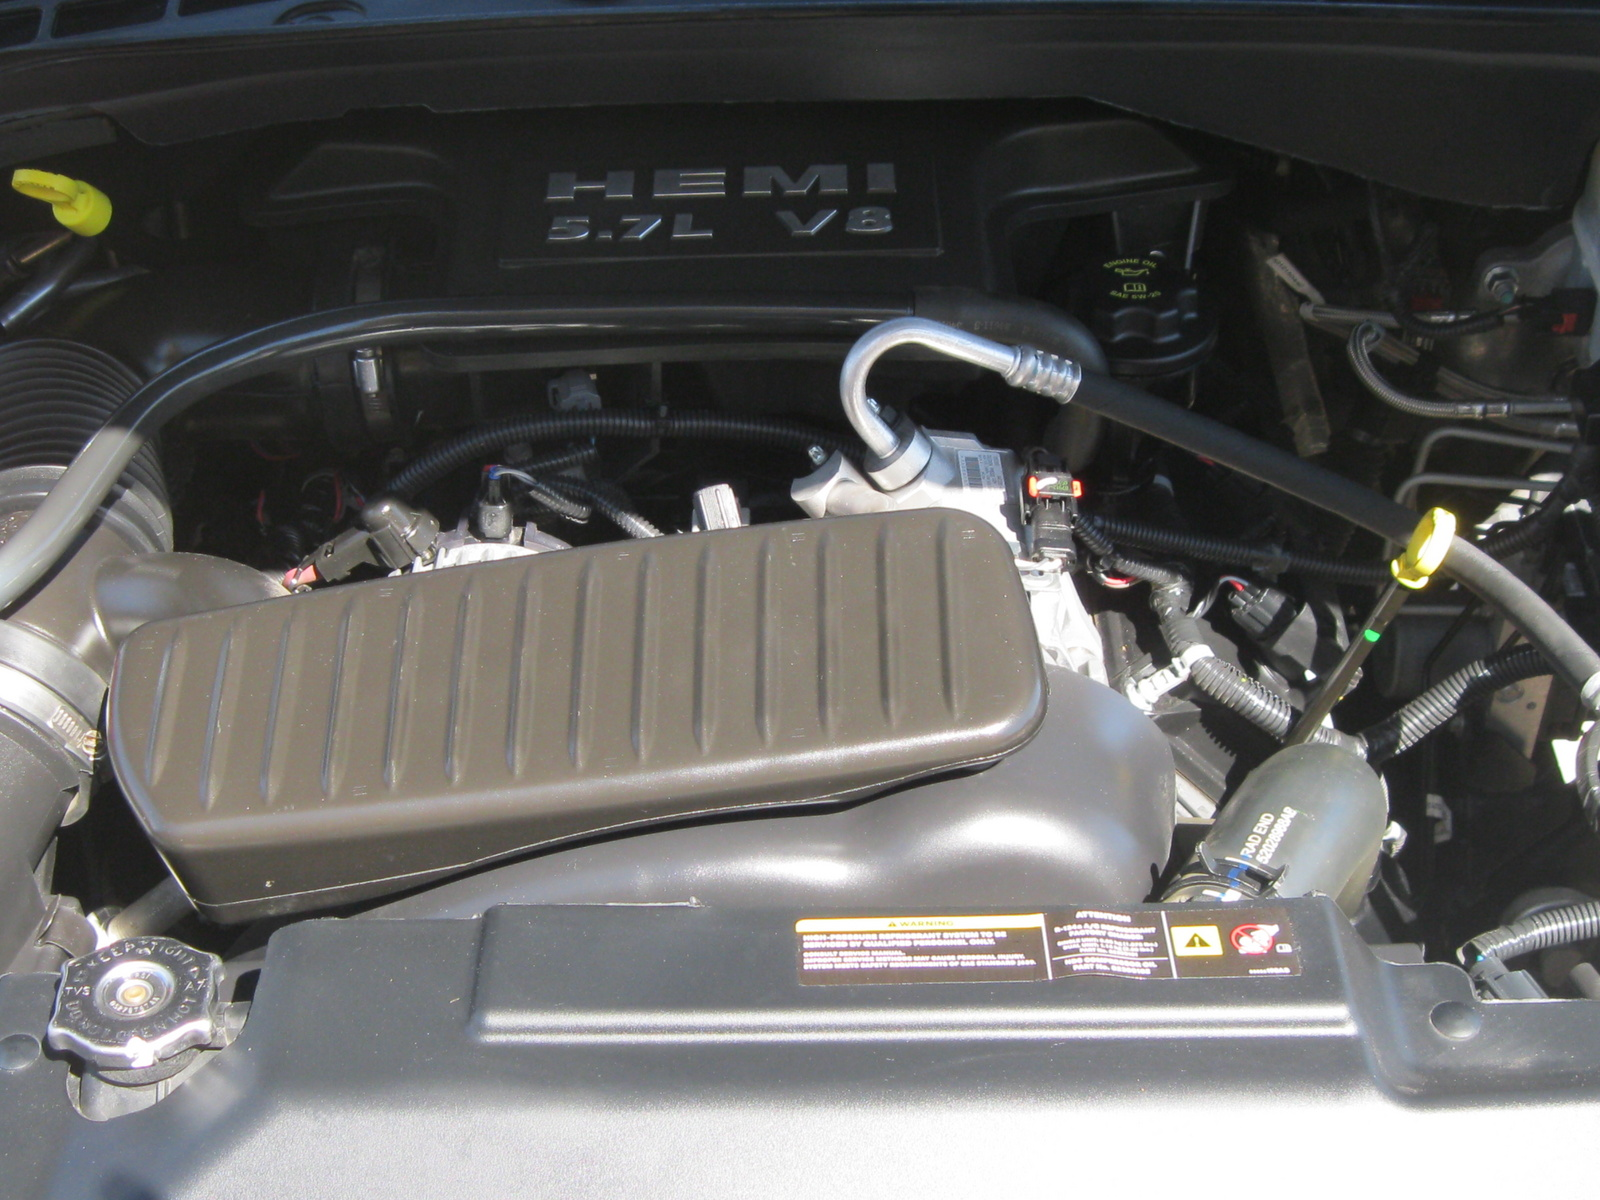 Chrysler Aspen engine #4